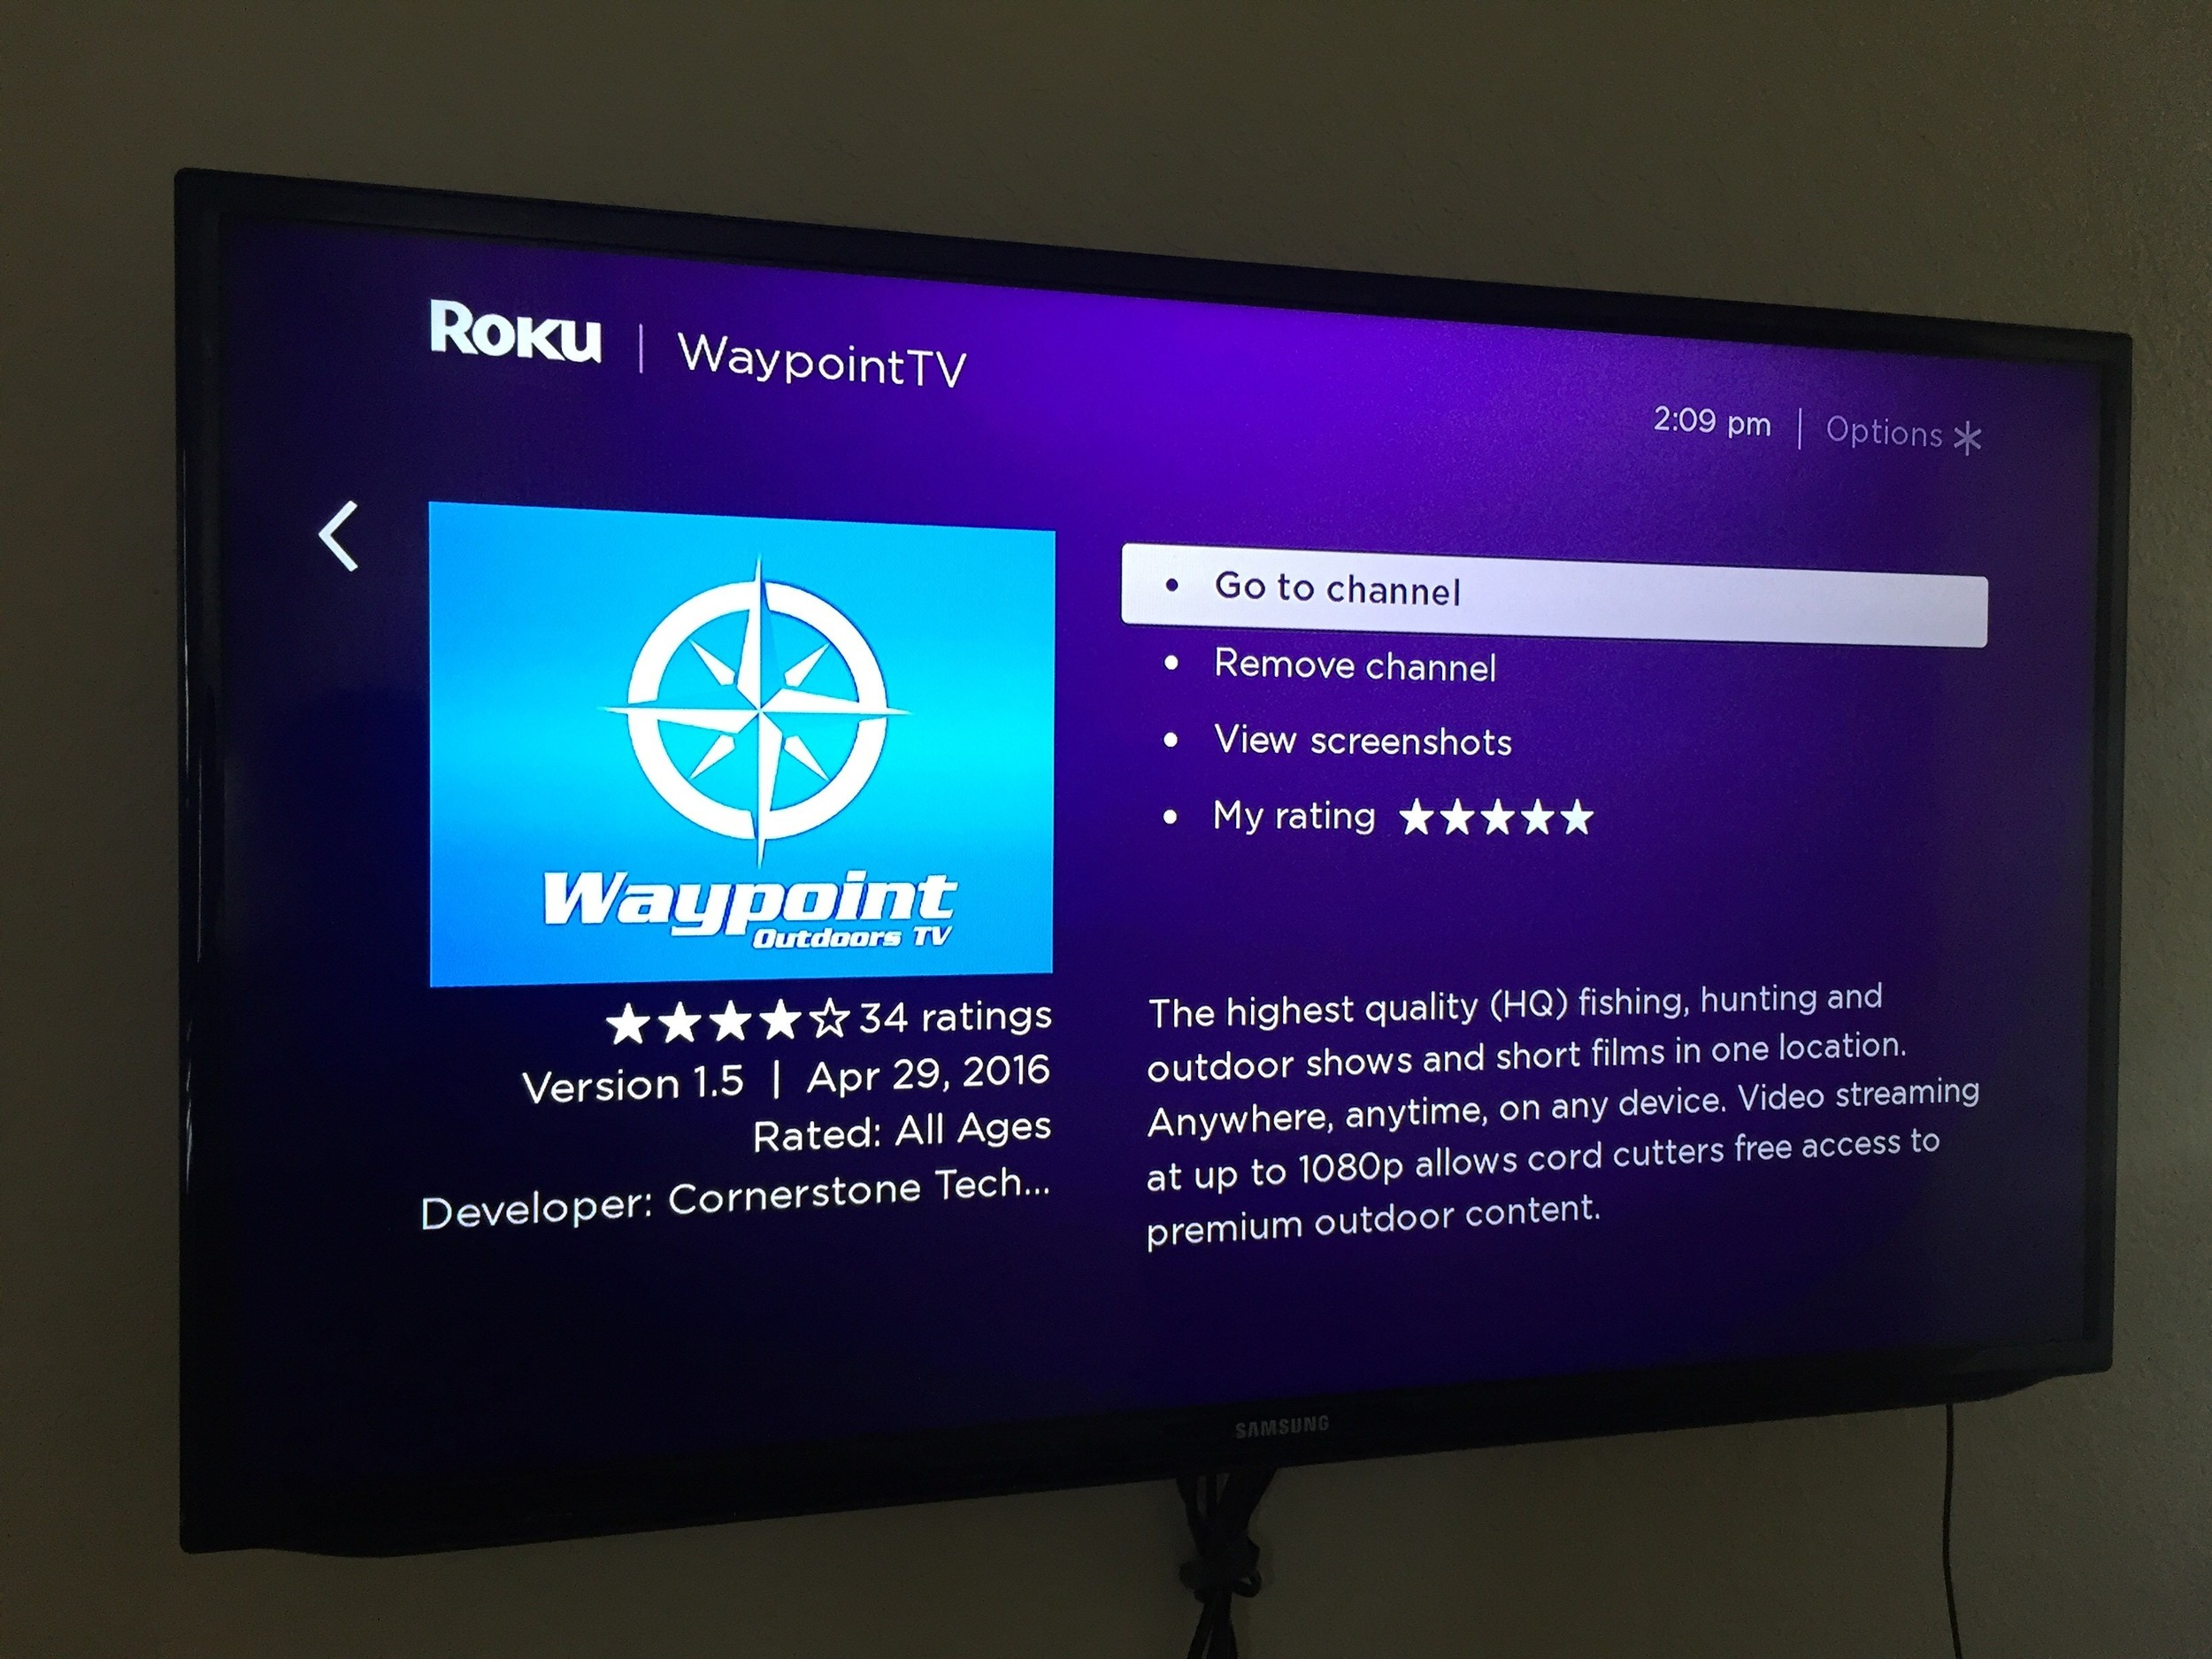 Add the waypoint tv channel on your roku